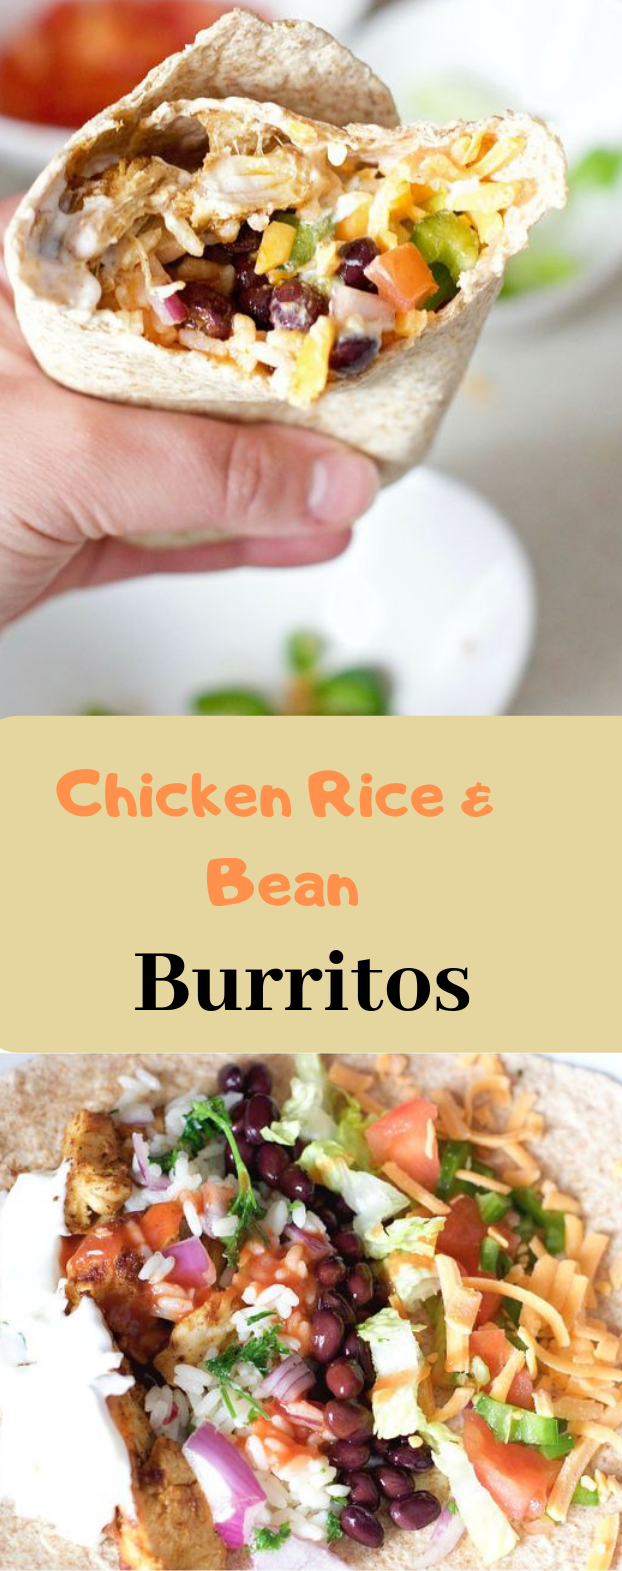 CHICKEN RICE AND BLACK BEAN BURRITOS #dinner #yummy